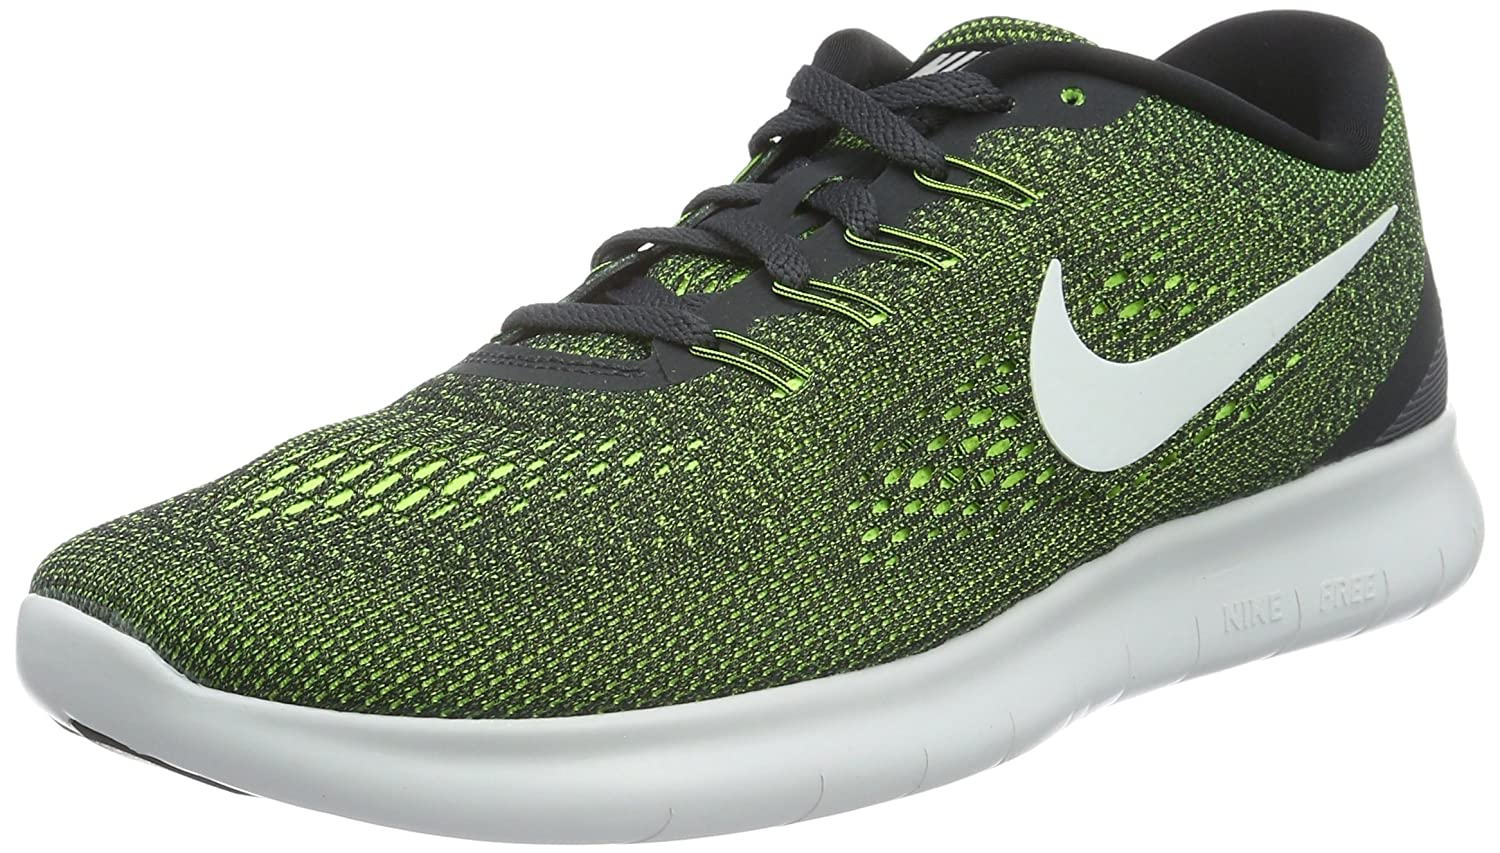 NIKE Men's Free RN Running Shoe B019DGXD8M 12 D(M) US|Anthracite/Off White/Volt/White